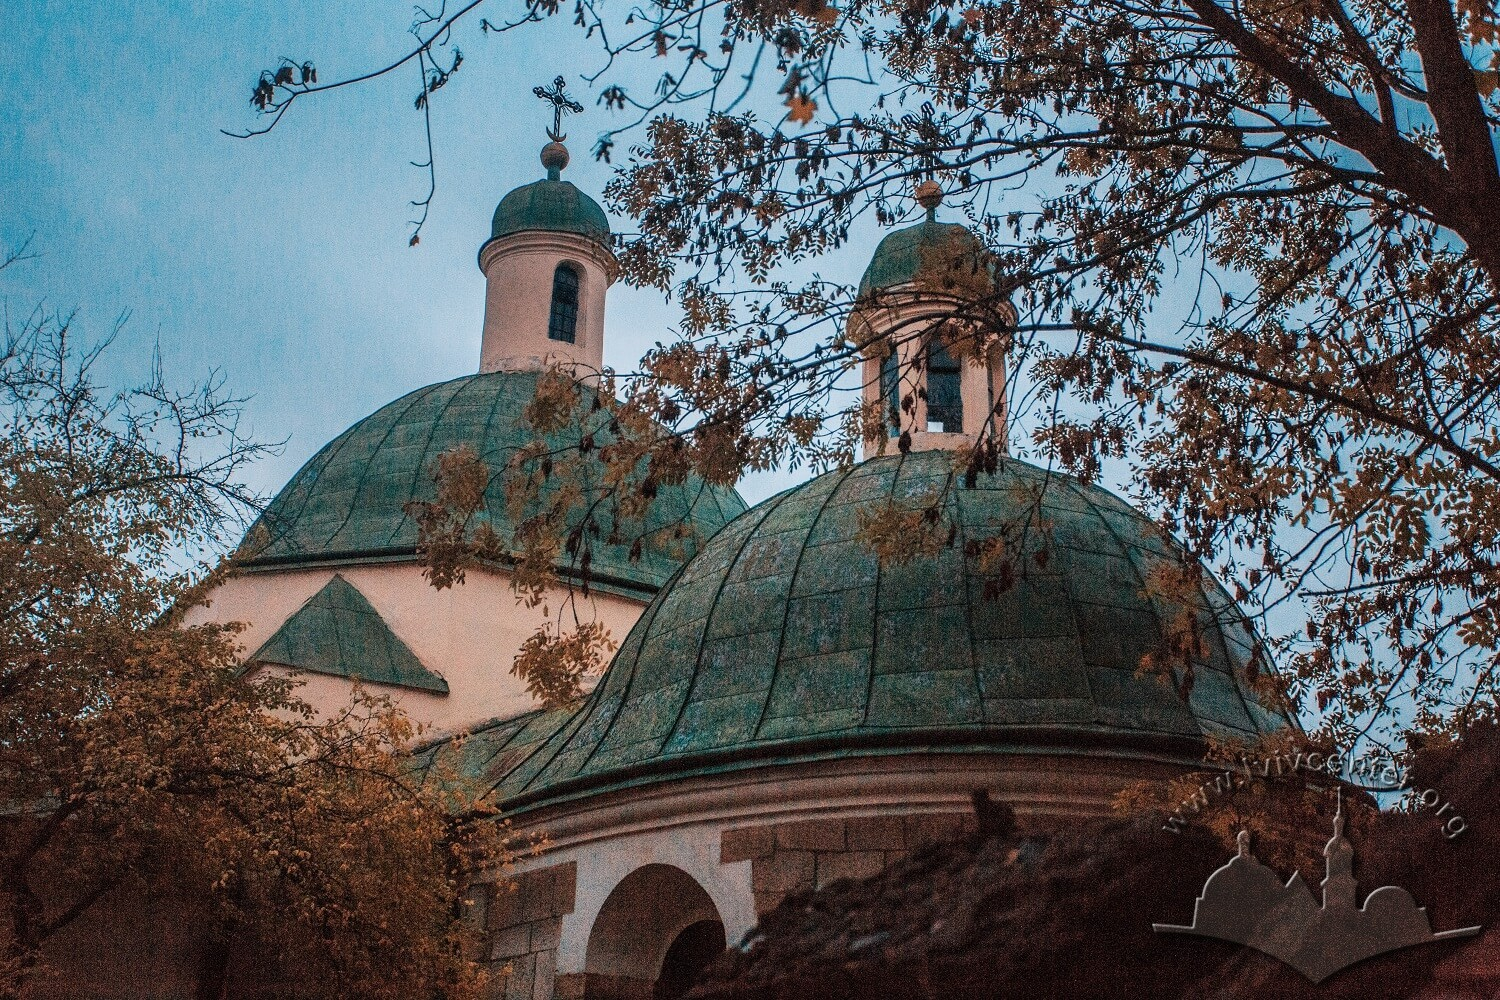 Vul. Khmelnytskoho, 28. Domes/Photo courtesy of Nazarii Parkhomyk, 2015